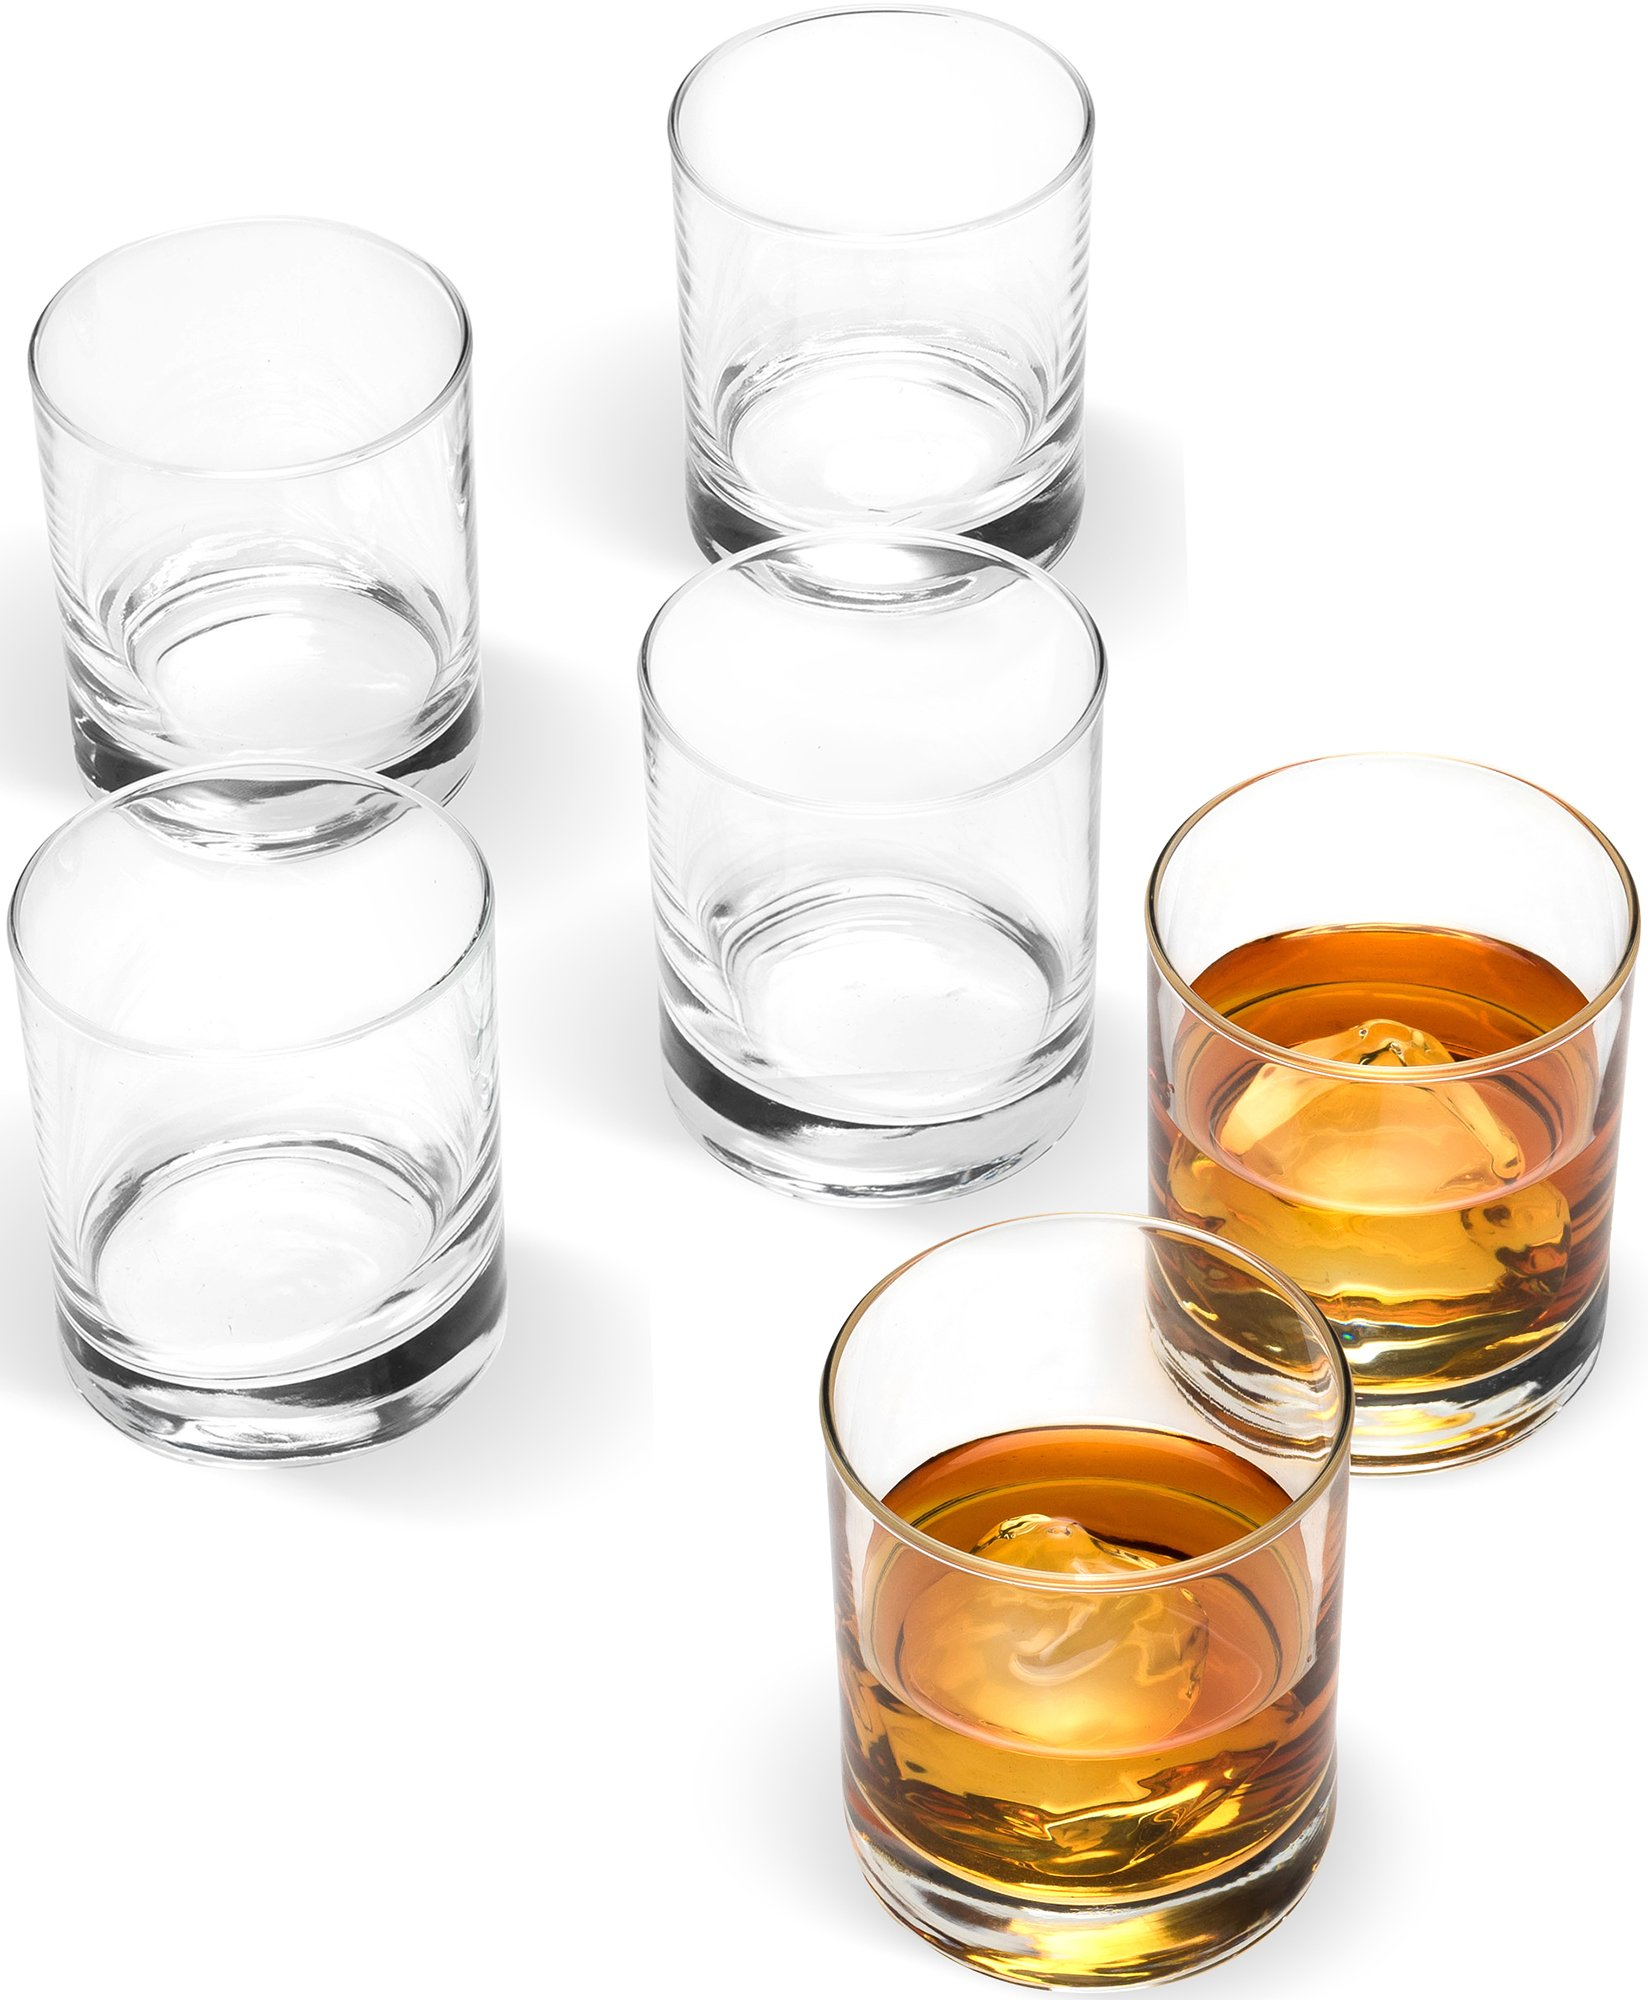 Bormioli Rocco Small 2 ¾'' x 3'' Italian Weighted Bottom Old Fashioned Whiskey Glasses for Wine, Scotch, Cocktails, Juice, and Water - [6 Piece Set] 6 ½ Ounce